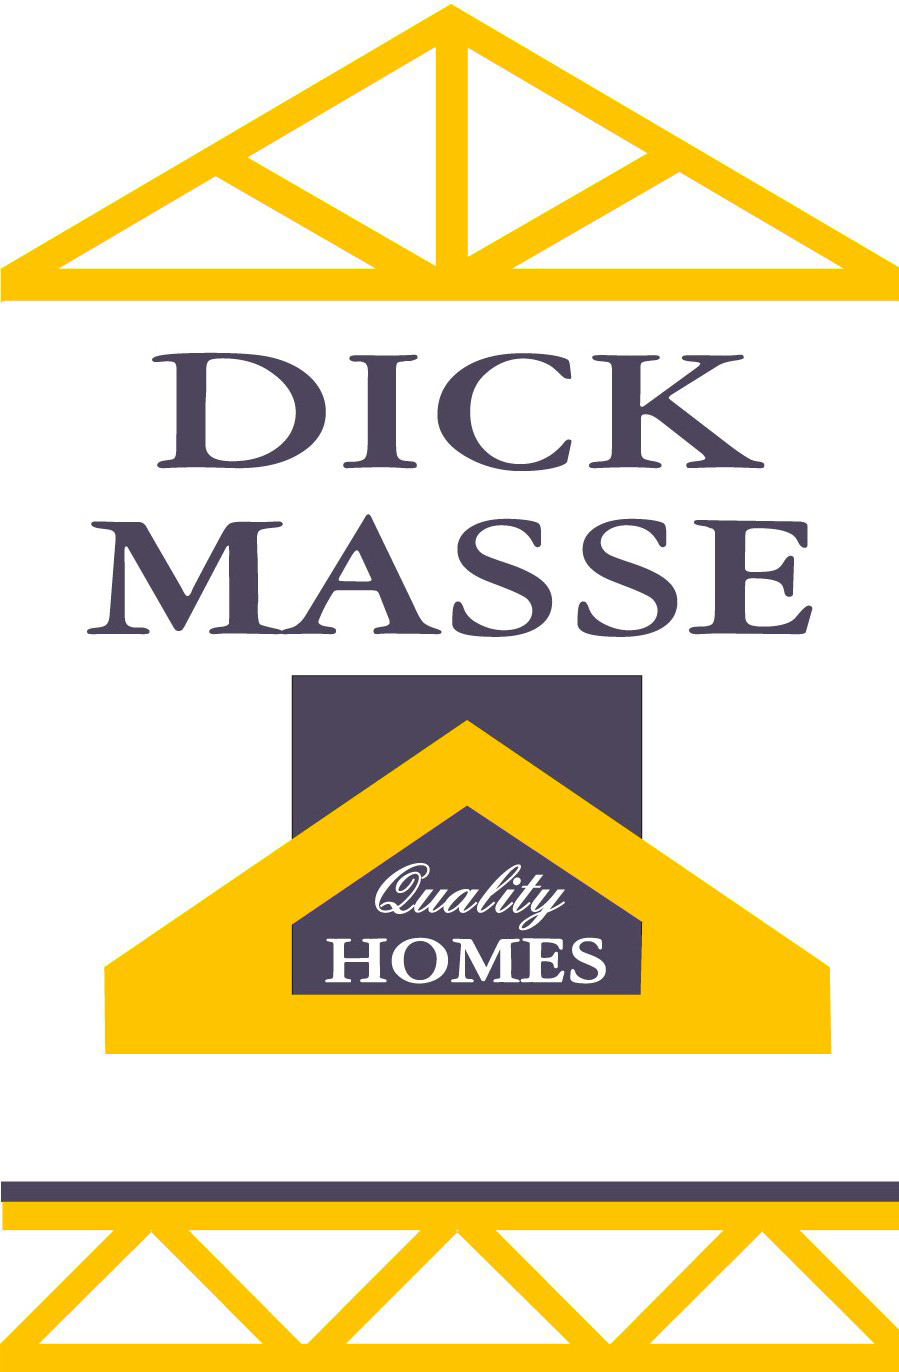 Dick Masse Quality Homes